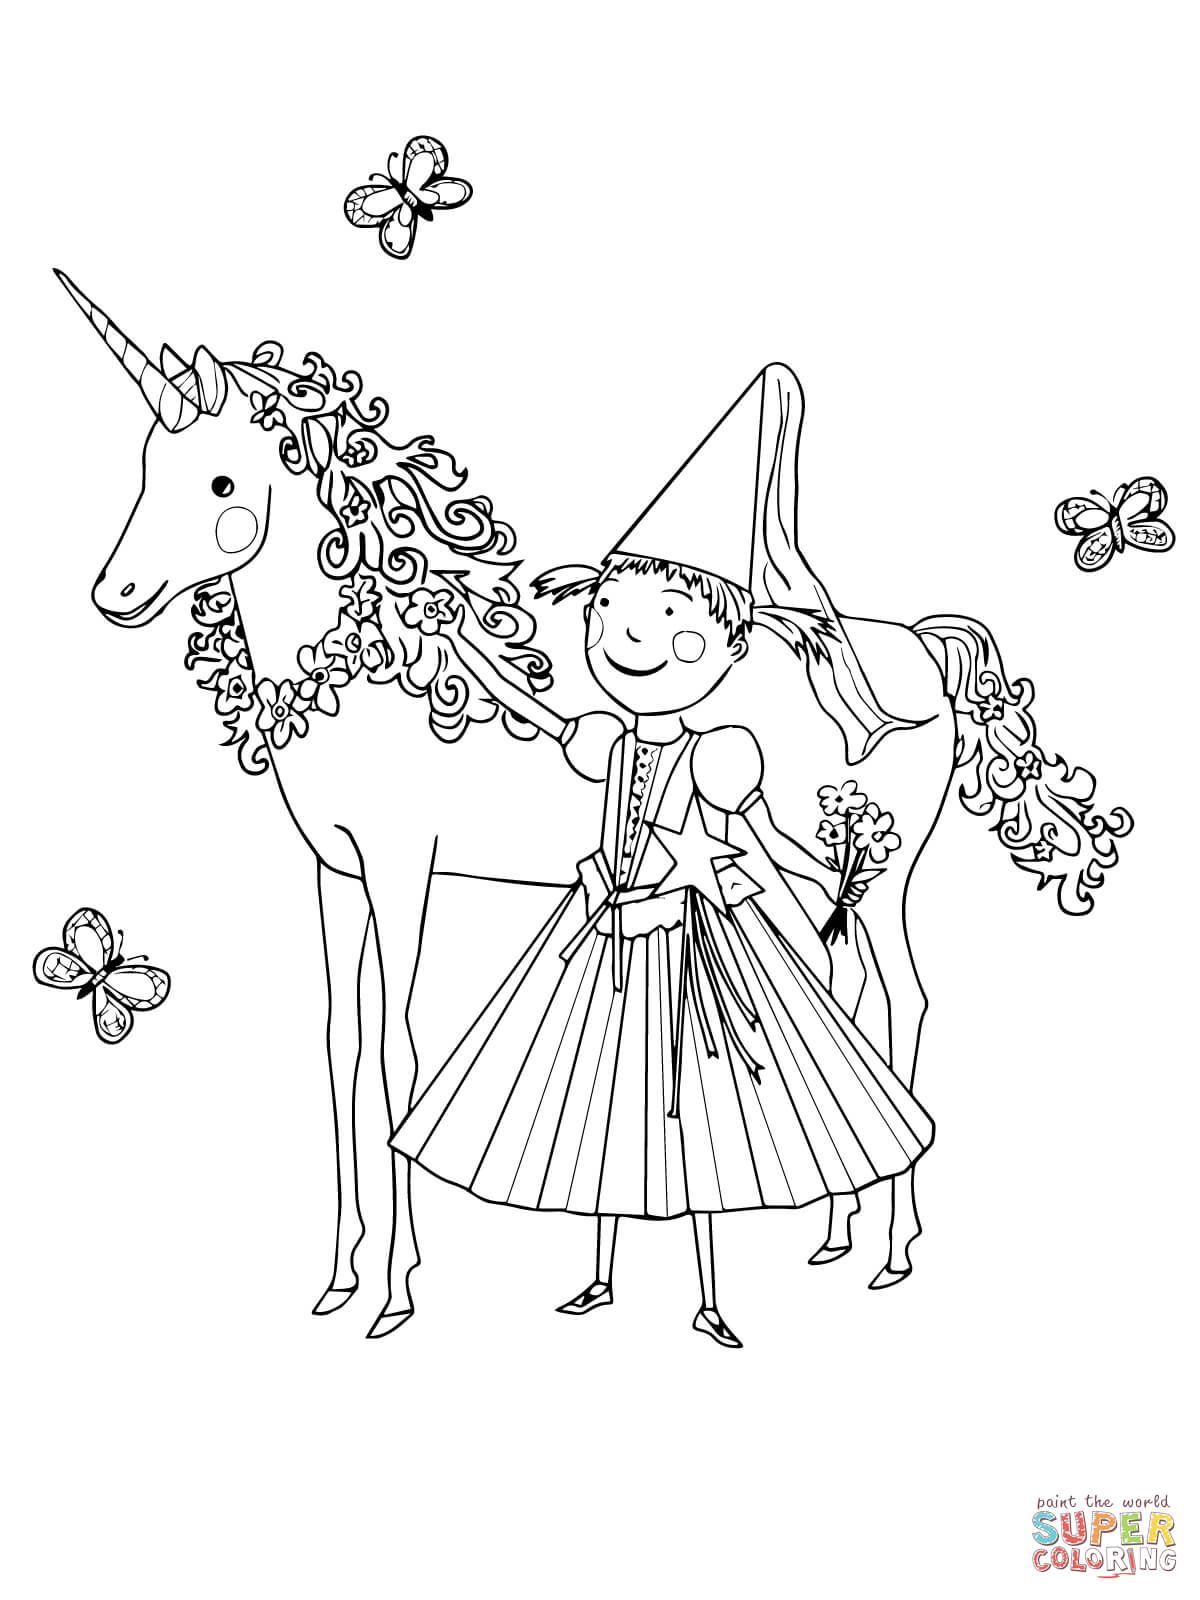 Pinkalicious Coloring Pages To Download And Print For Free